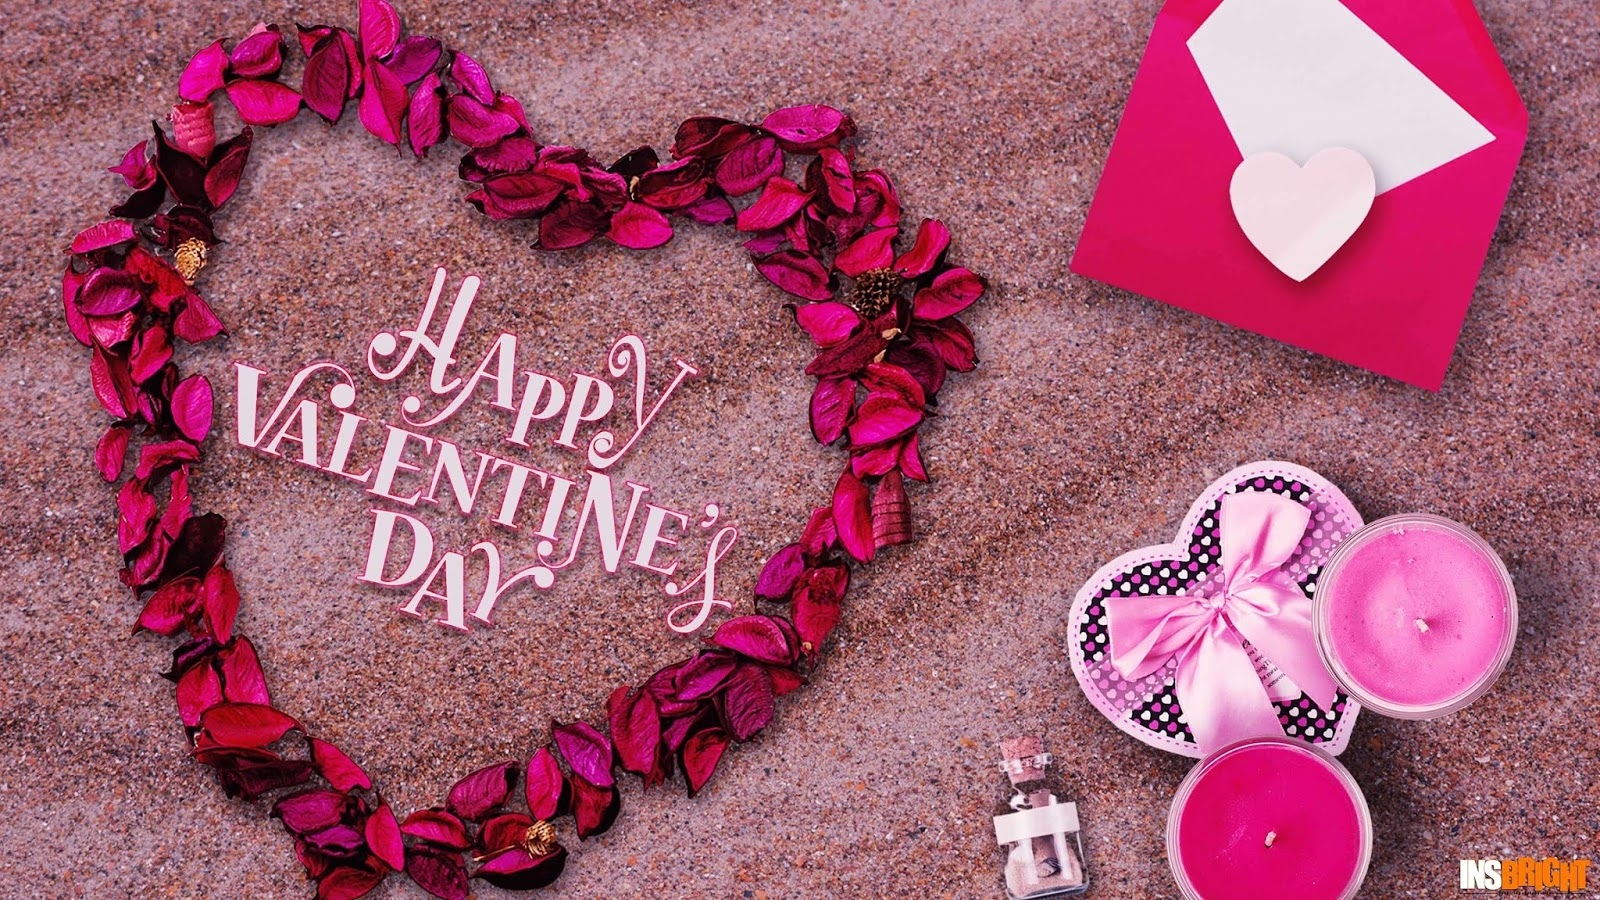 Valentines Day 2020 HD Images